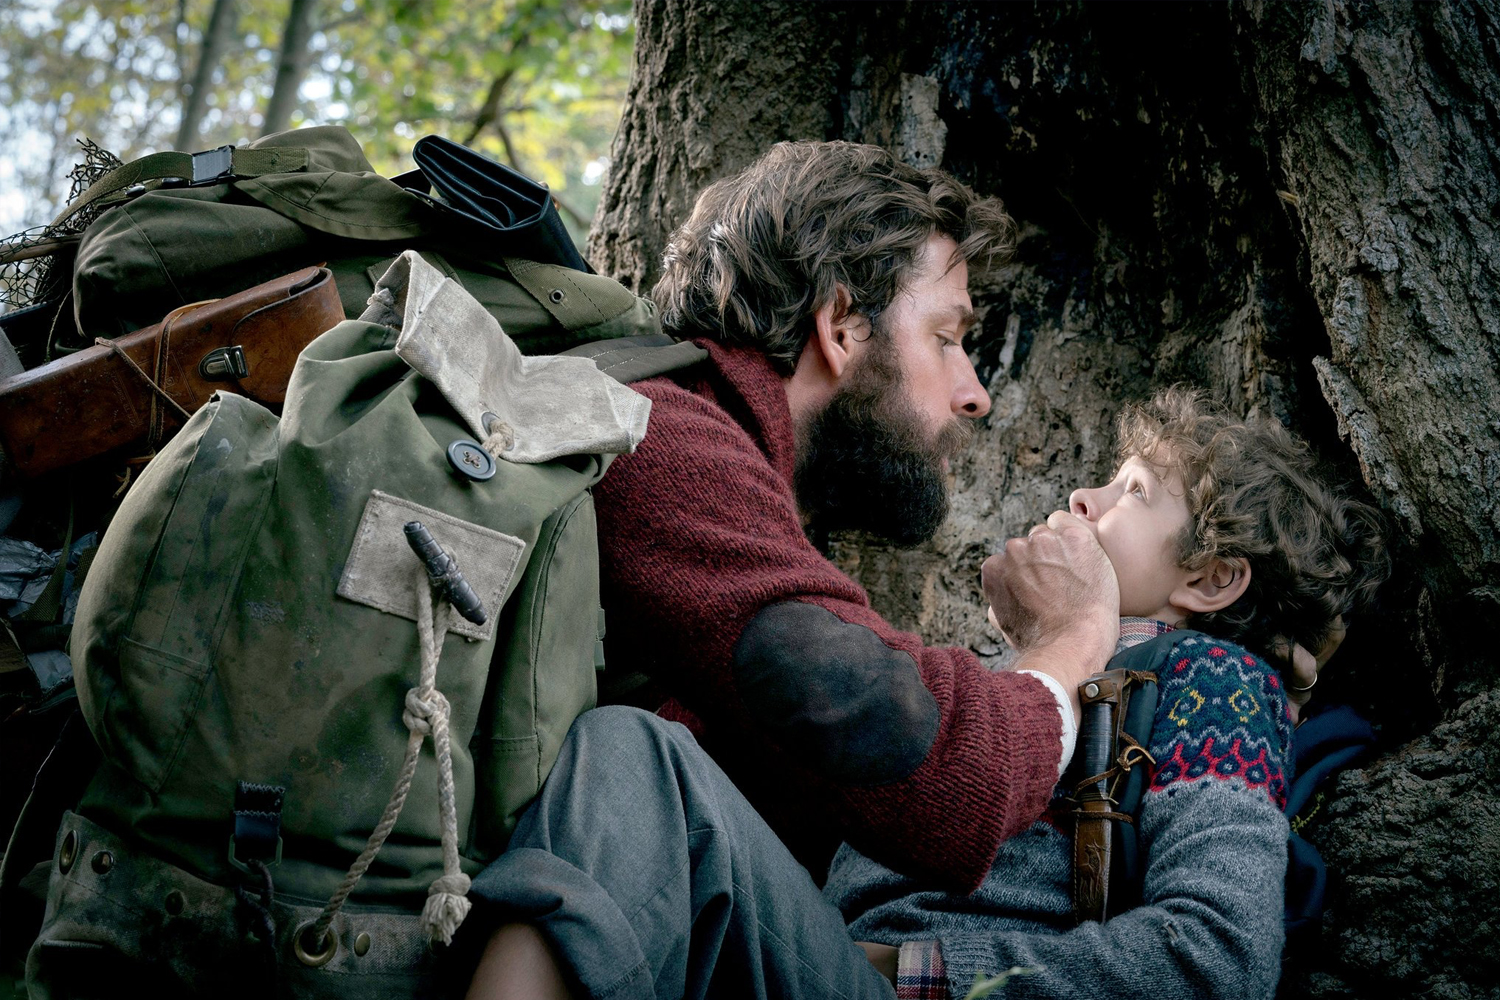 A Quiet Place - Who knew that John Krasinski had a horror film in him? And a good one at that. Following a post-apocalyptic family on the run from sound-sensitive beasts, A Quiet Place delivers with its scares and taut suspense, all without making a sound. Silent and powerful performances from Krasinski, Emily Blunt, and deaf actress Millicent Simmonds elevate the film above standard frightful fare.